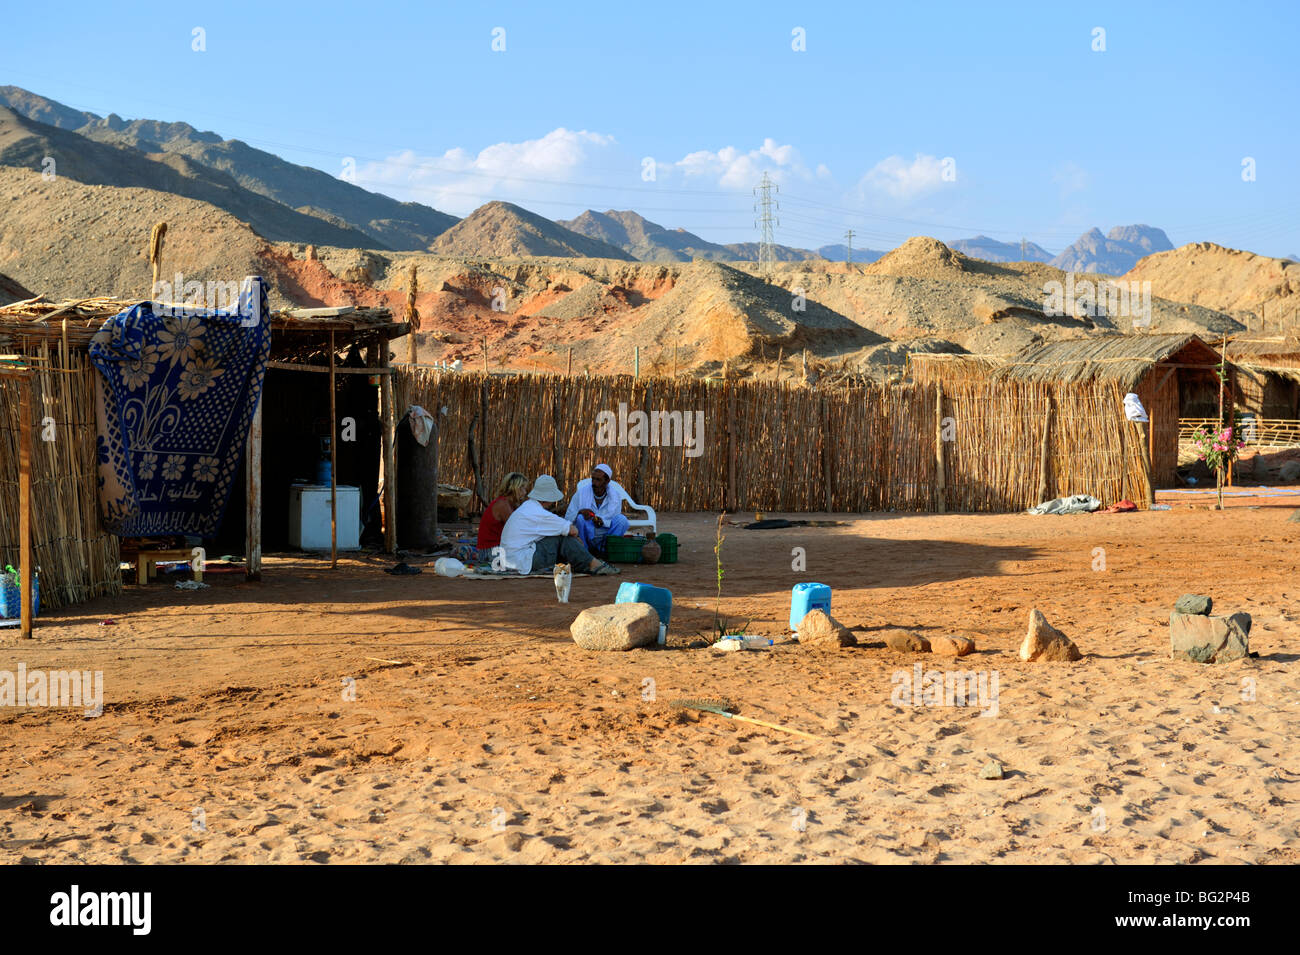 Bedouin household camp on the beach with tourist visitors, Nuweiba, Egypt - Stock Image